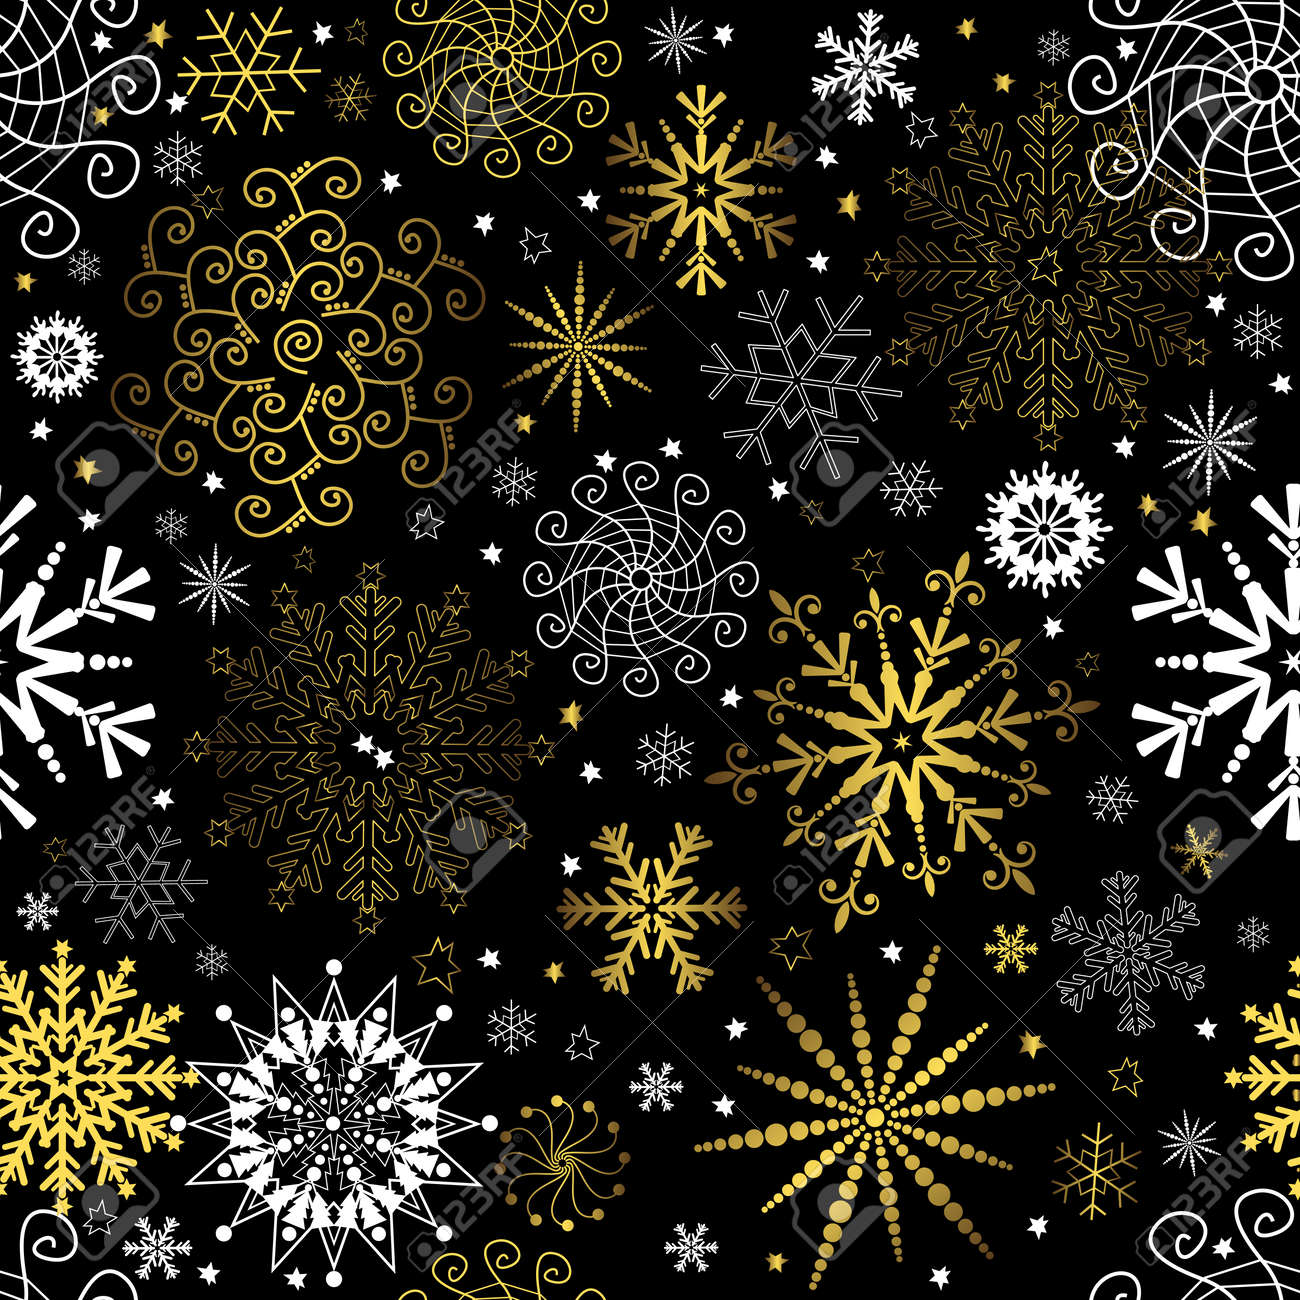 Seamless Black Christmas Wallpaper With White And Golden